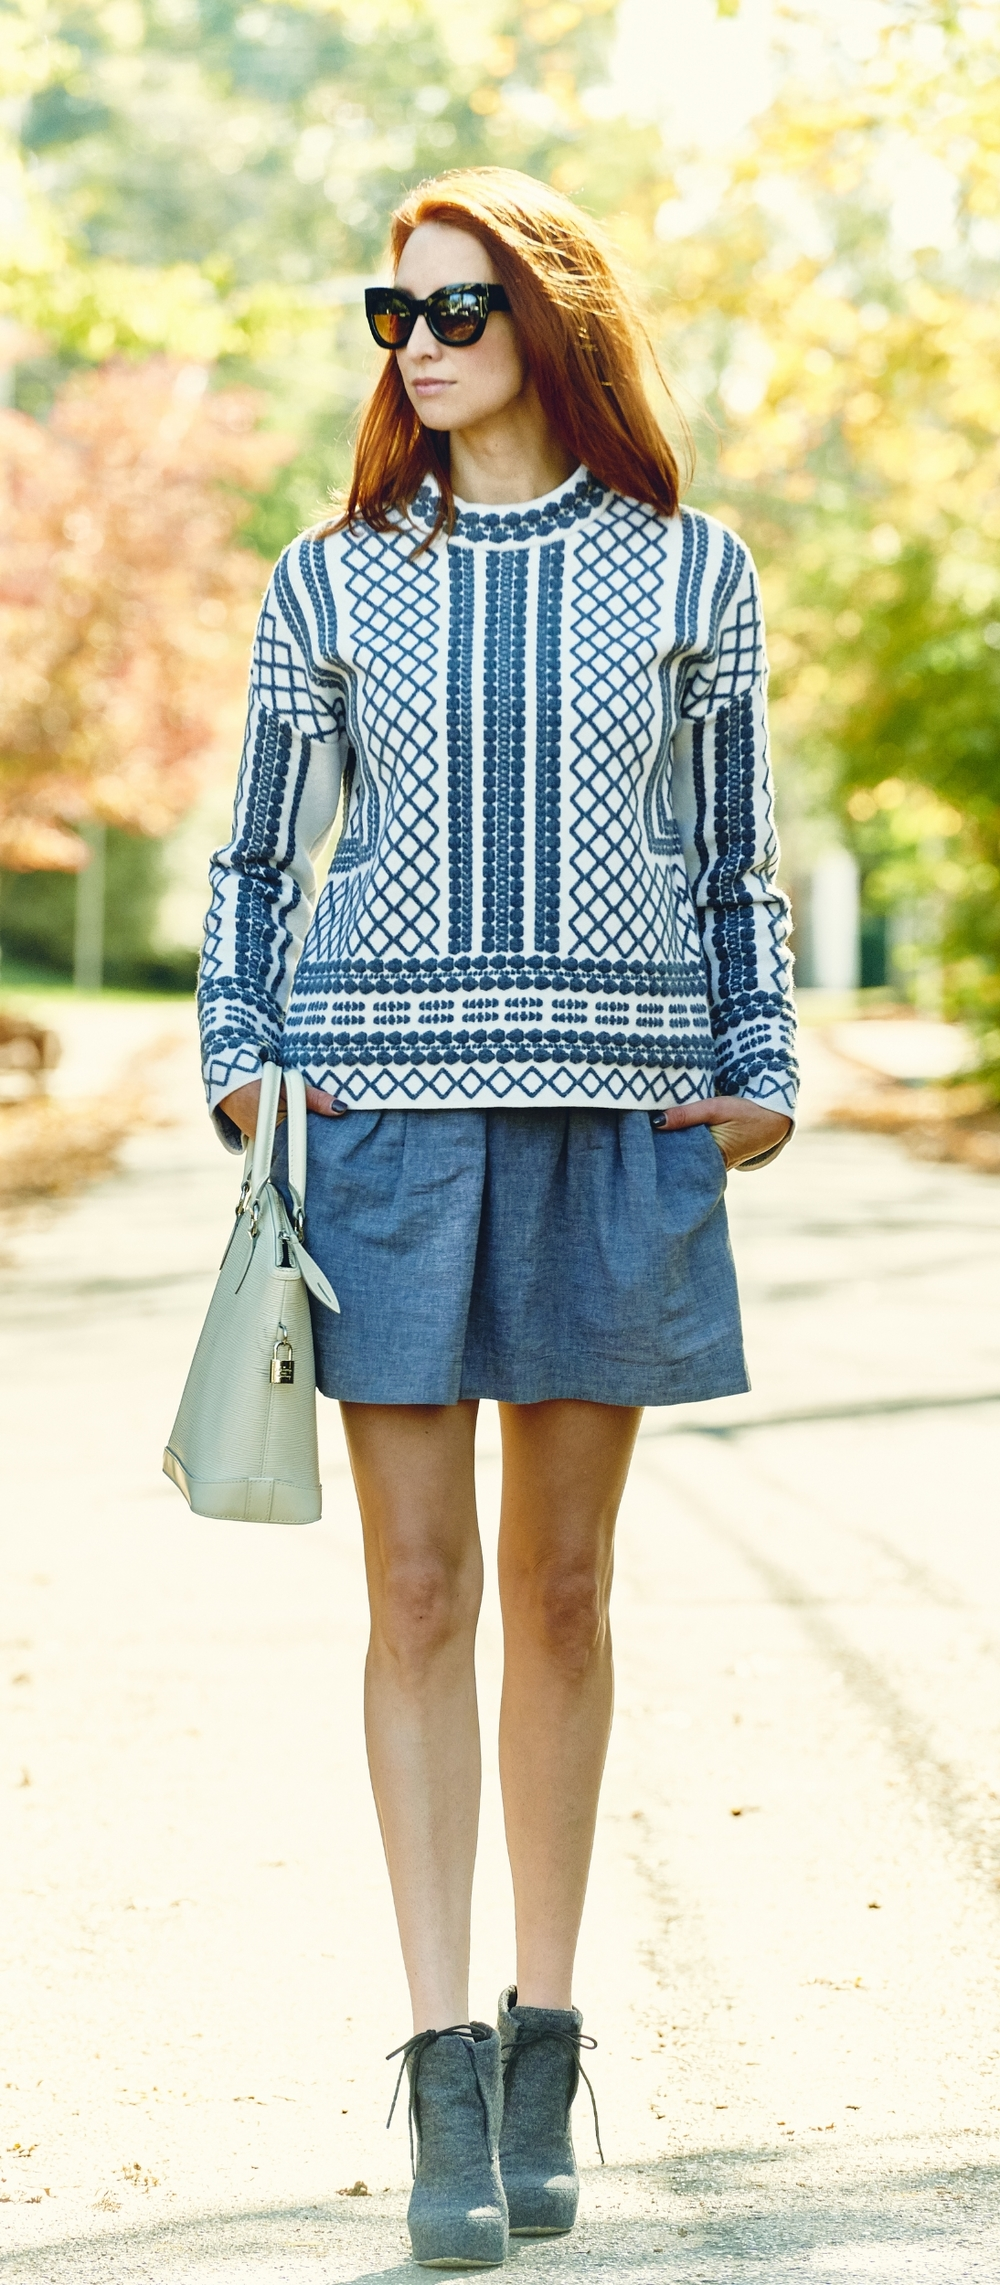 PHOTO BY CAMERON POWELL  SWEATER - TORY BURCH / SKIRT - MADEWELL / SHOES - ALEXANDER WANG / BAG - LOUIS VUITTON